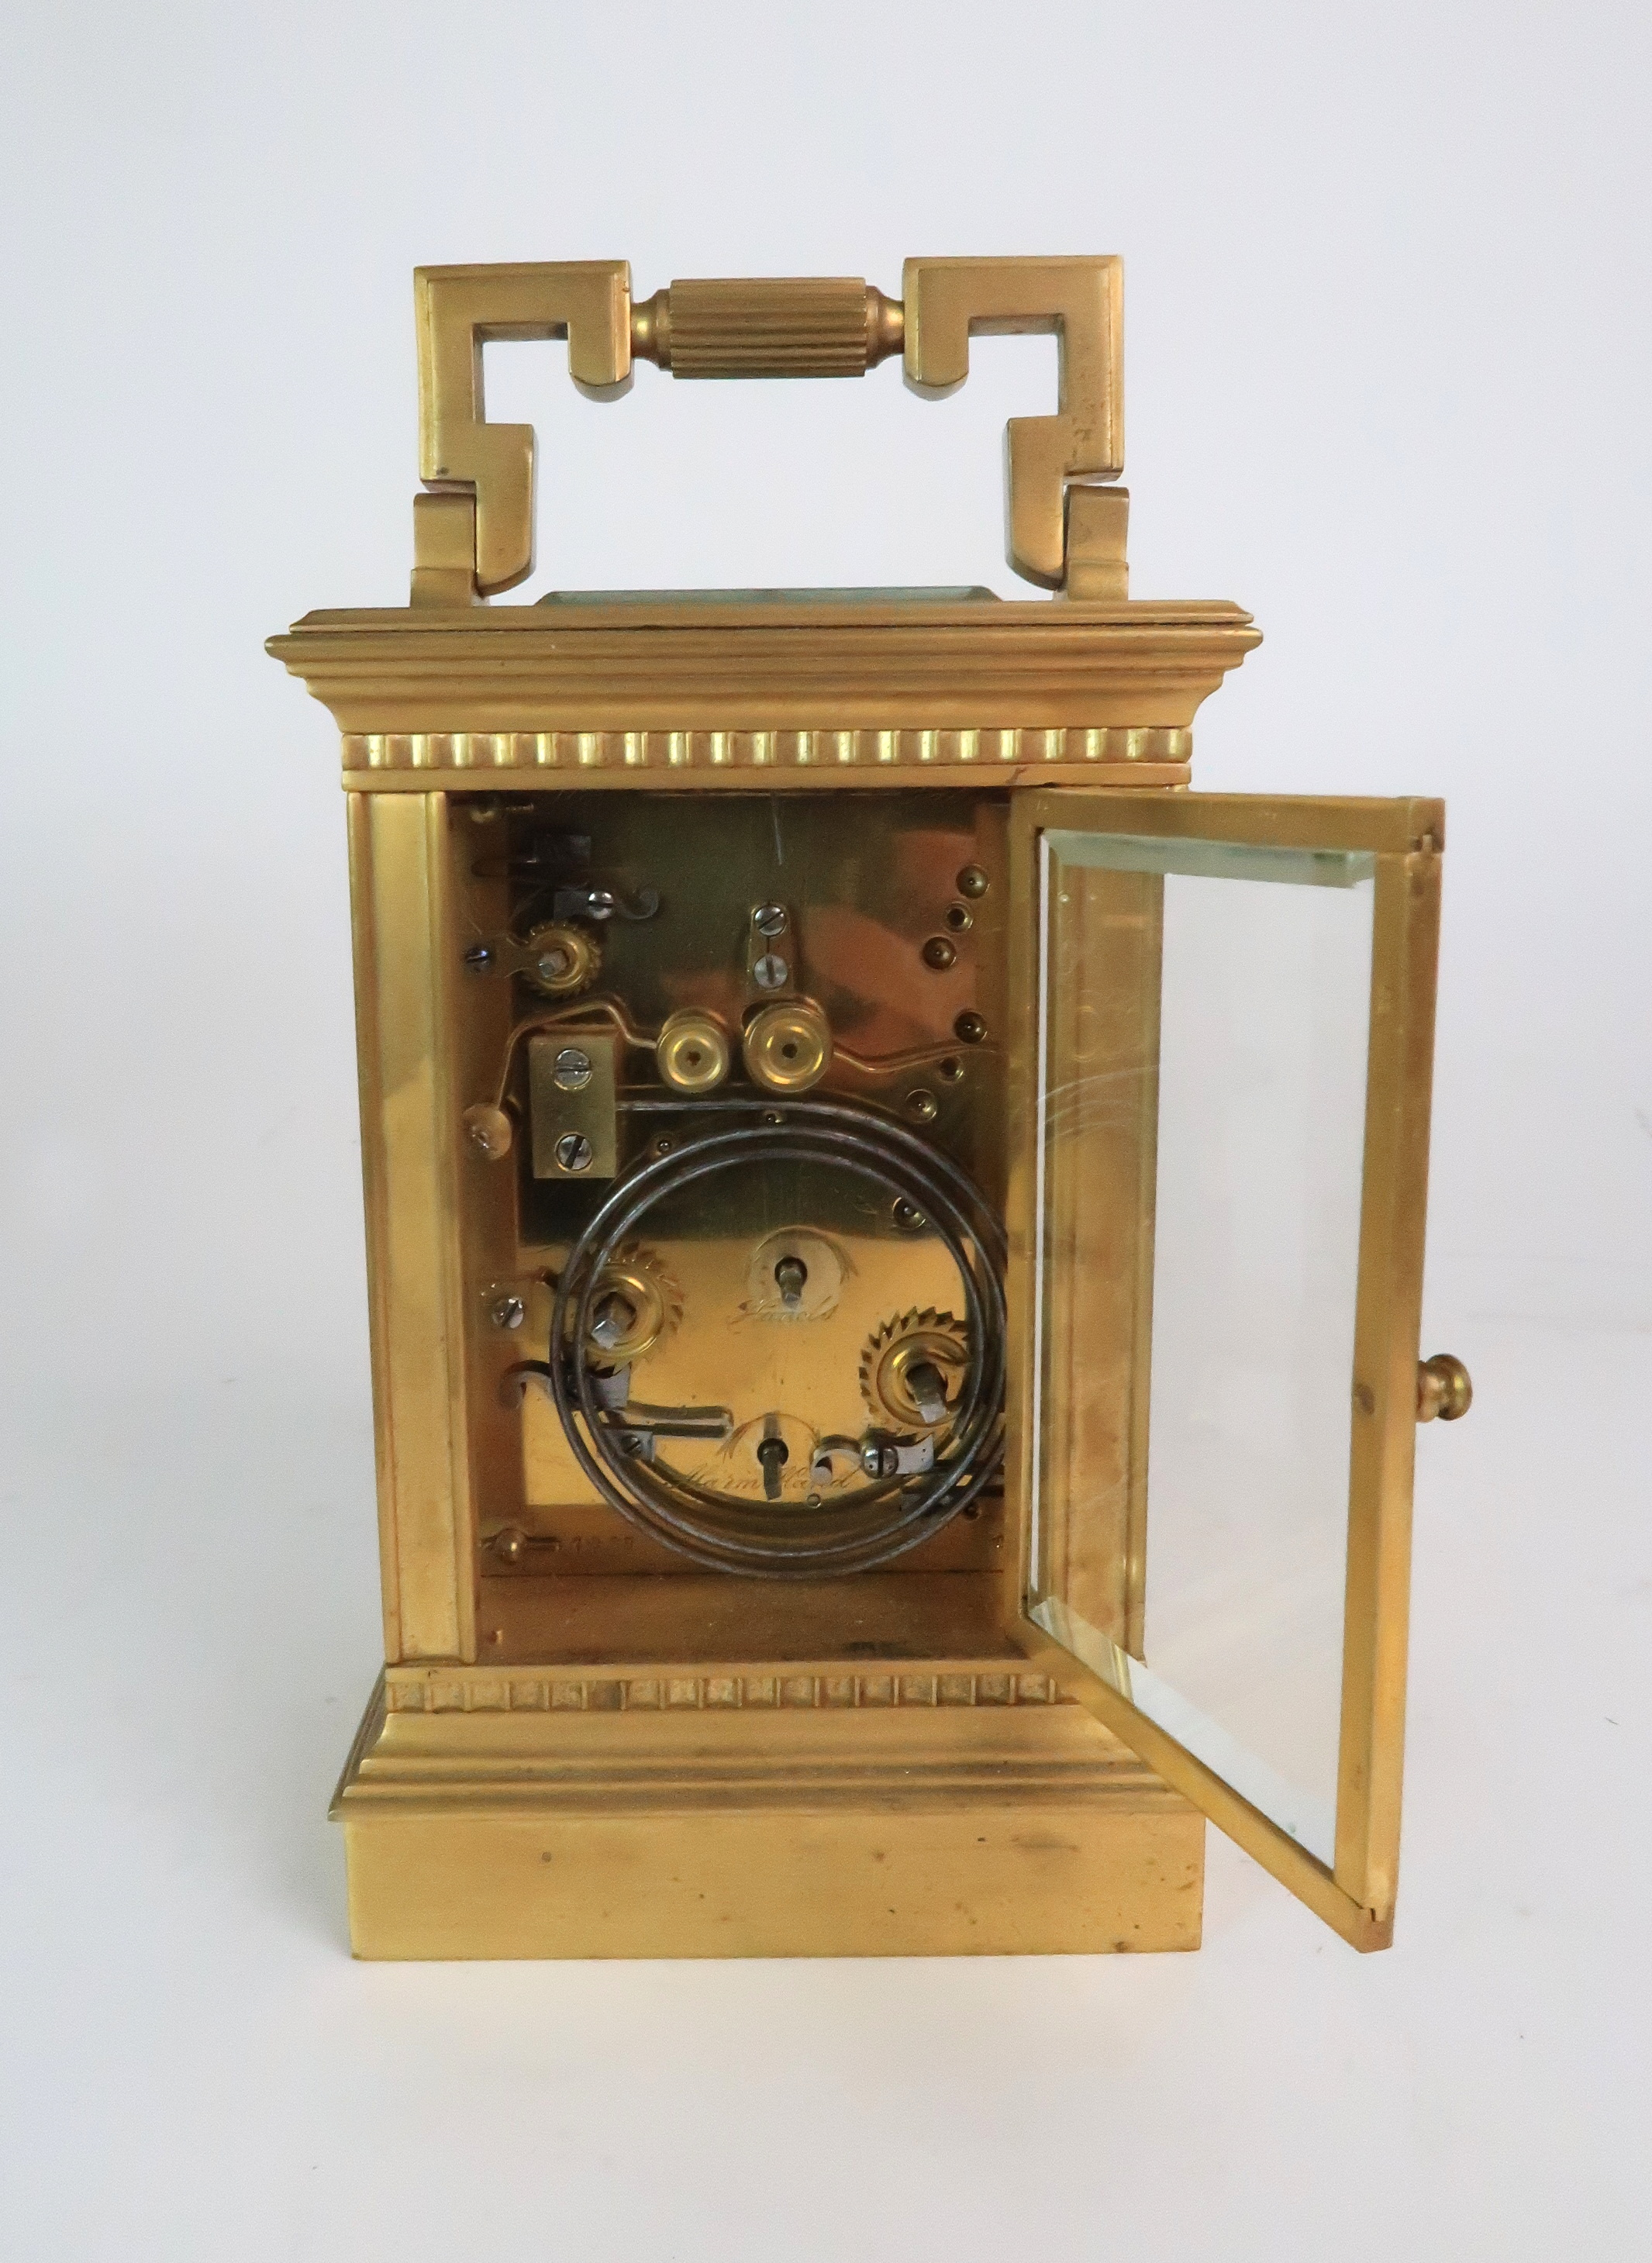 A FRENCH BRASS AND GLASS REPEATER CARRIAGE CLOCK the enamel dial with Roman numerals, with - Image 4 of 8